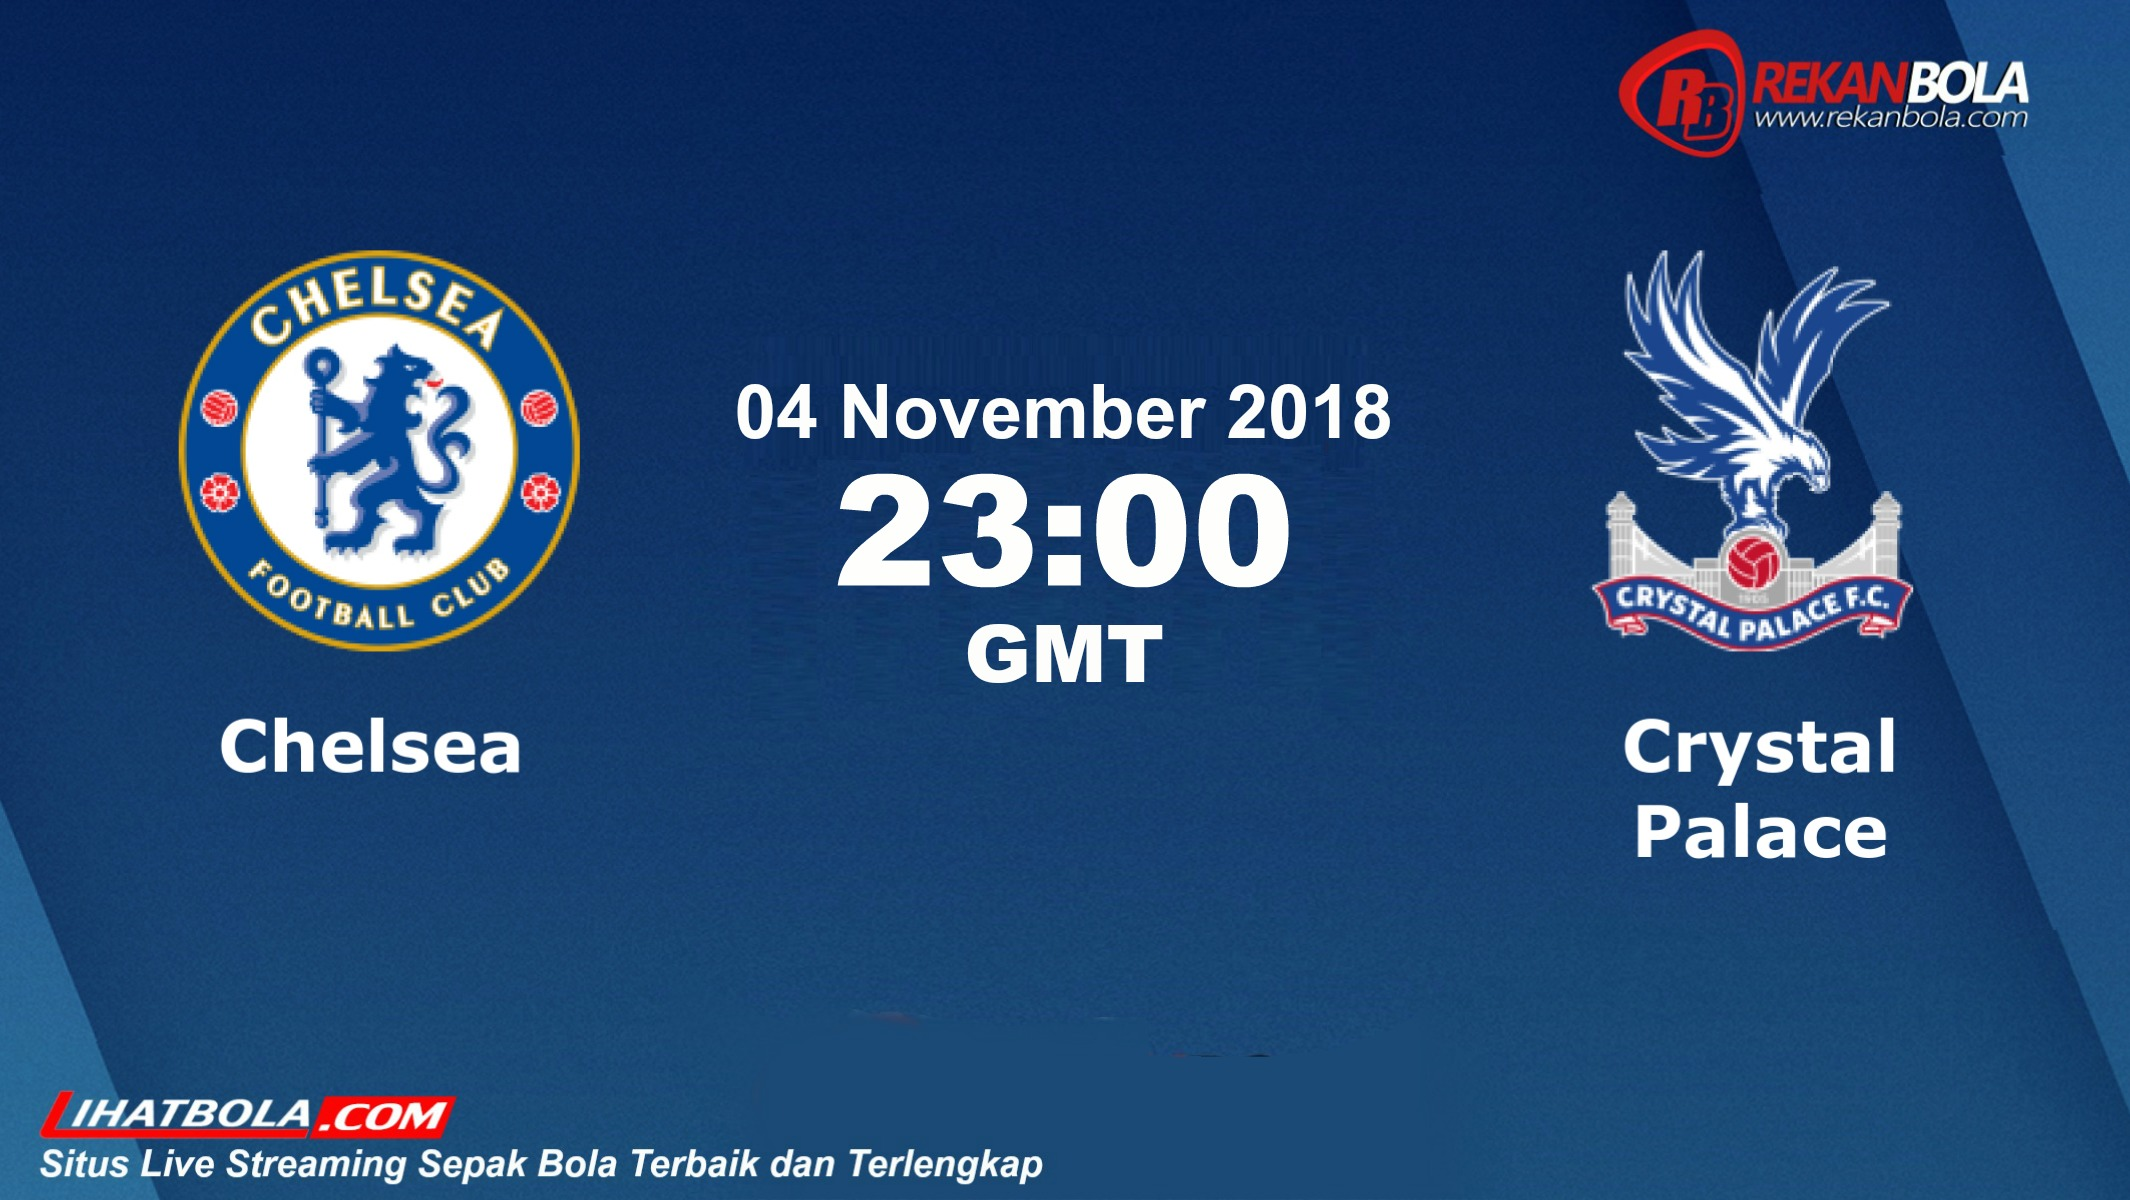 Nonton Siaran Live Streaming Chelsea Vs Crystal 04 November 2018